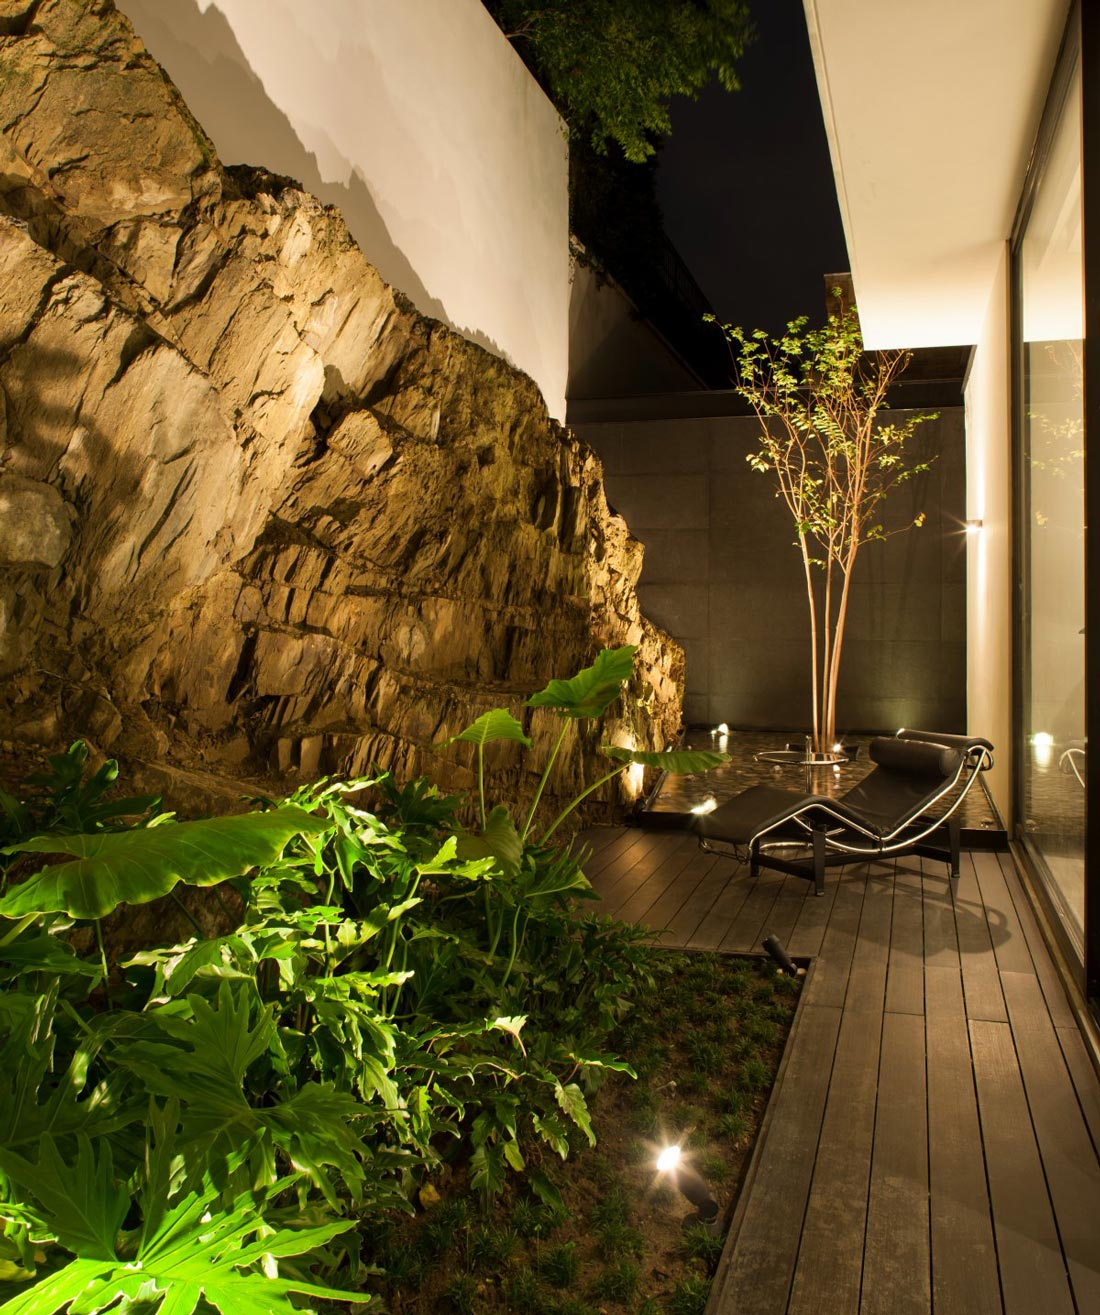 Courtyard, Natural Rock, Water Feature, Stylish Contemporary Home in Garza Garcia, Mexico